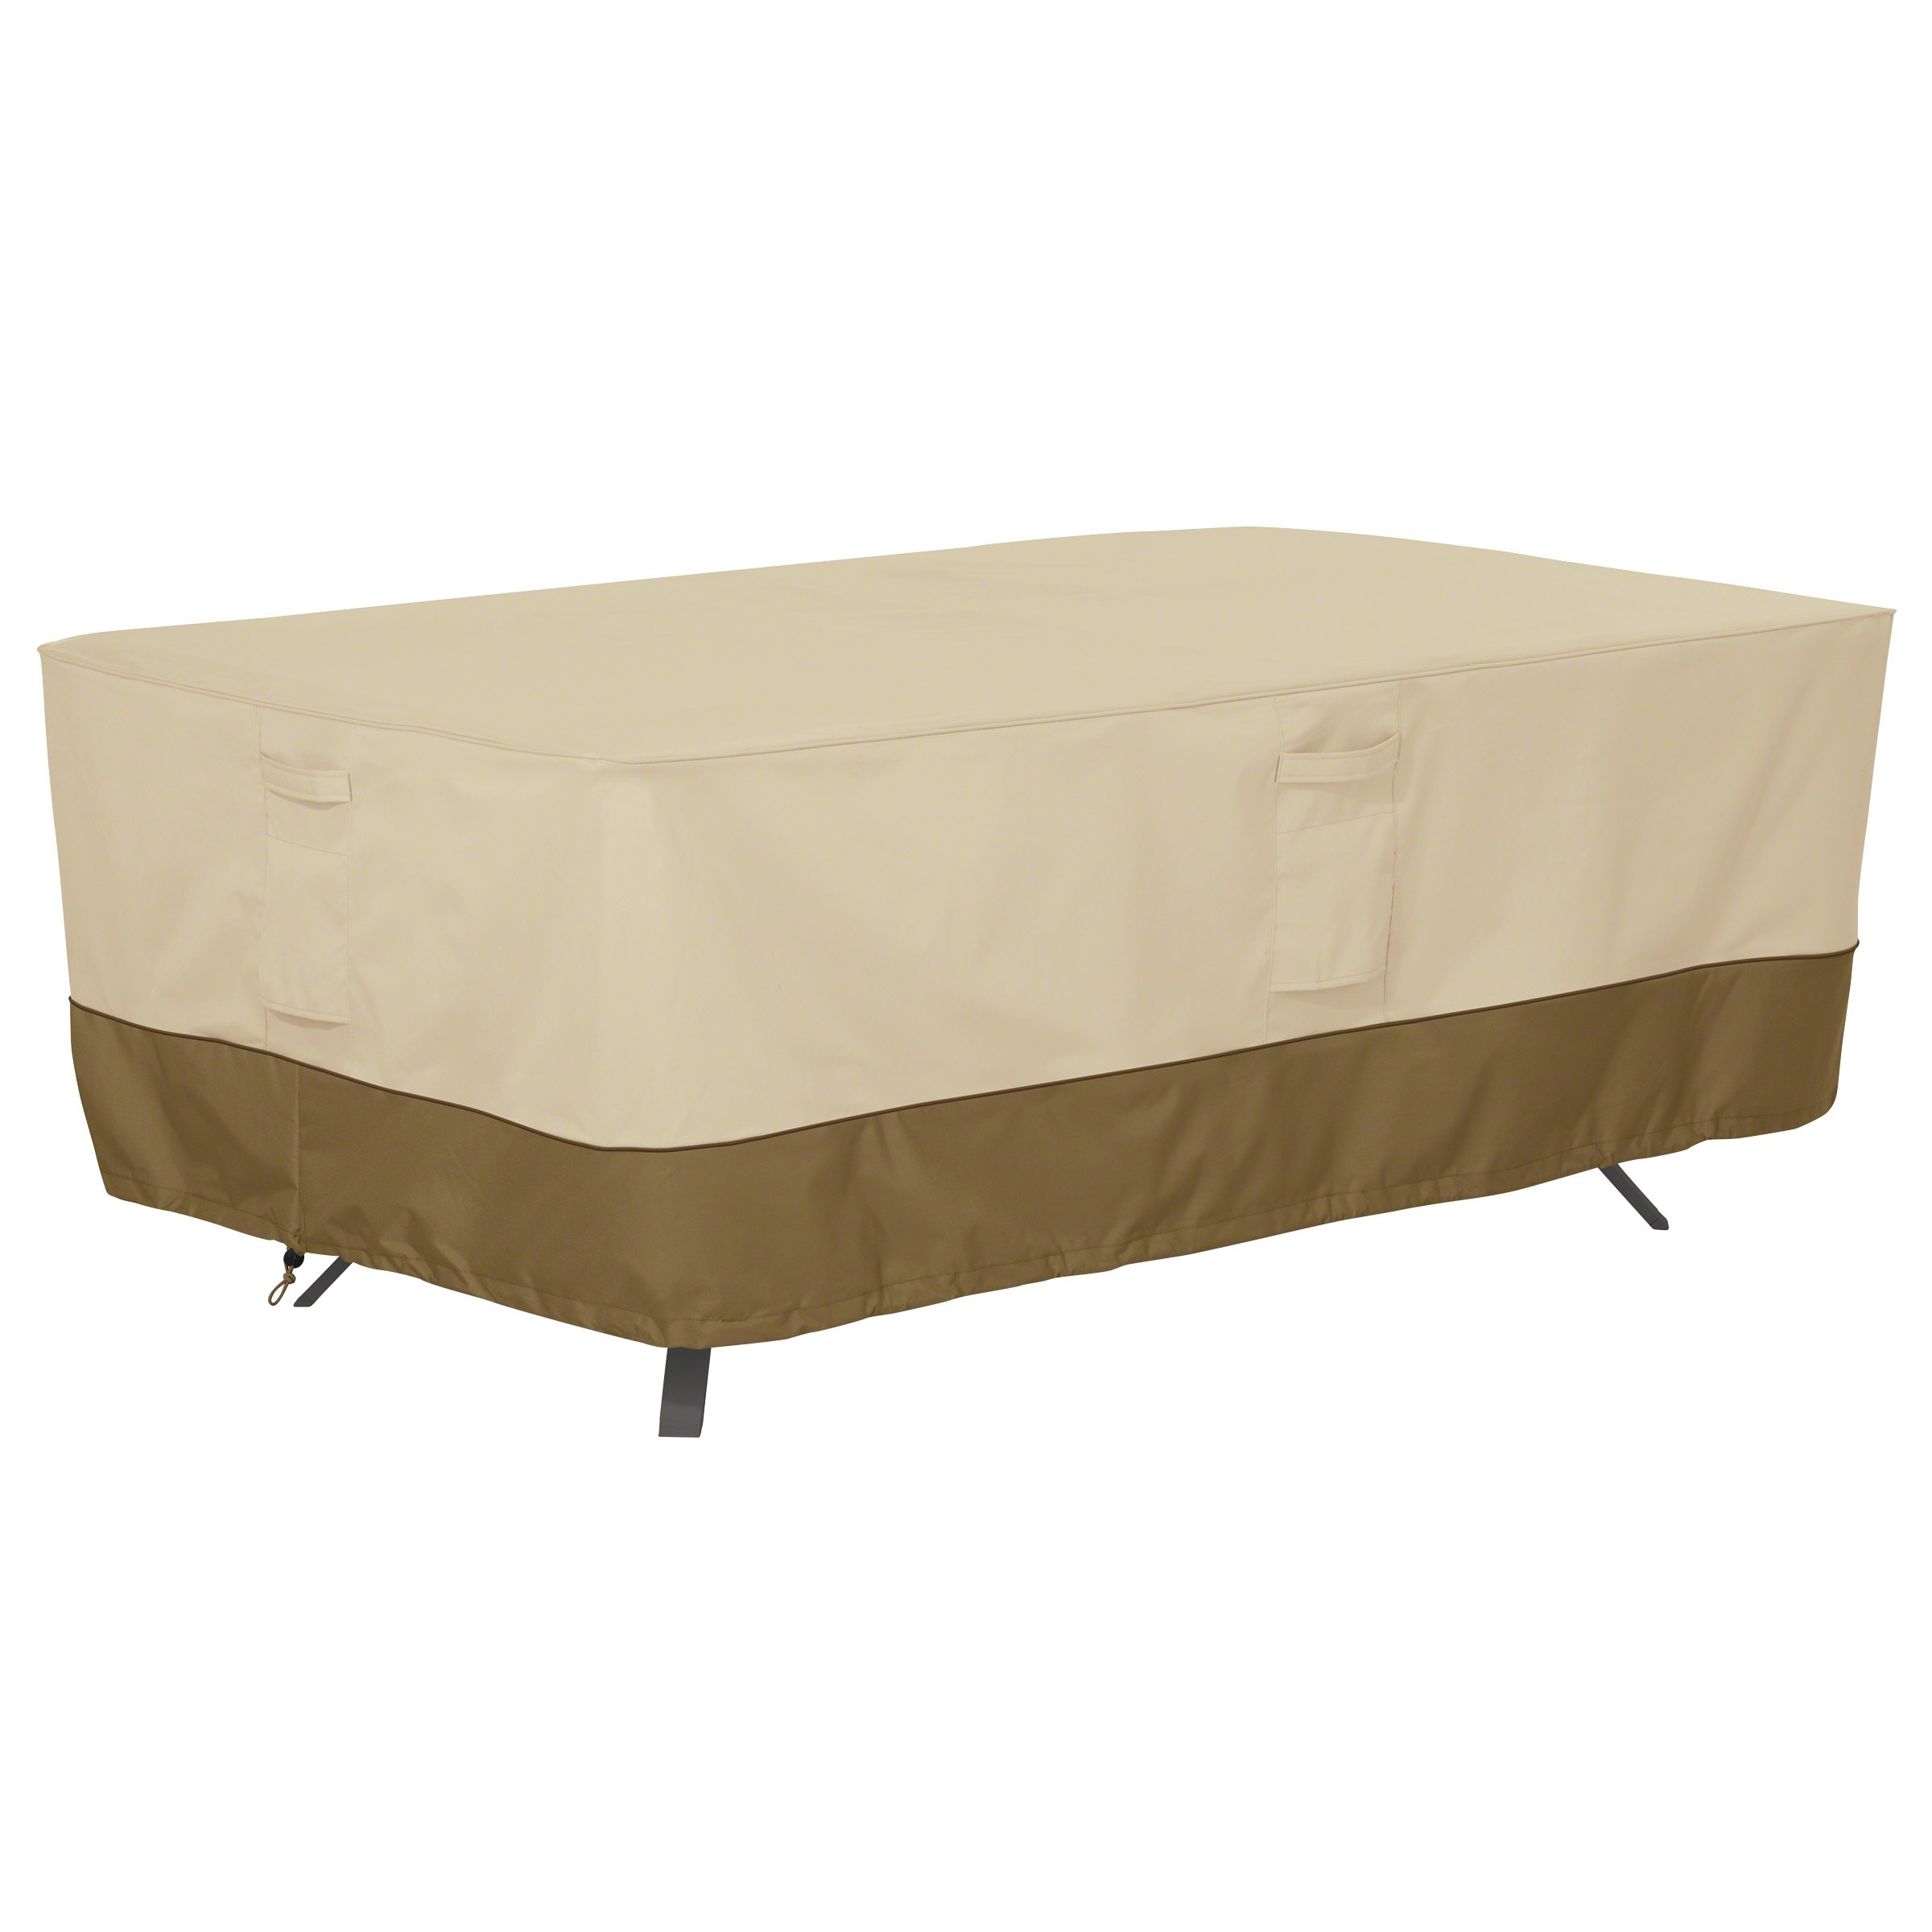 Classic Accessories Veranda Rectangular/Oval Patio Table Cover - Durable and Water Resistant Patio Furniture Cover, X-Large (55-564-011501-00)